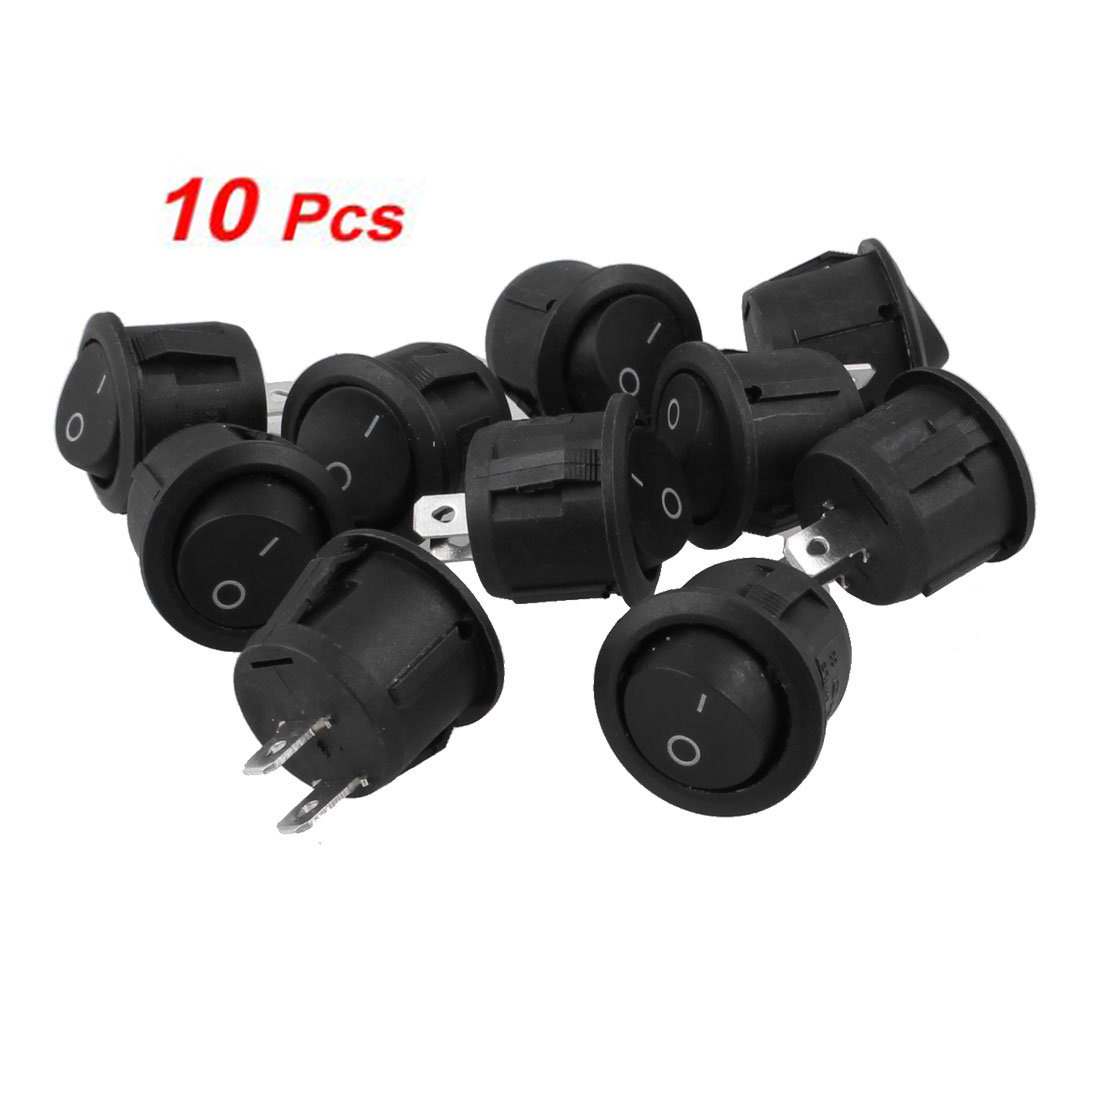 Promotion! 10Pcs AC 6A 10A 250V On Off Snap in SPST Round Boat Rocker Switch Black epson 10600 carriage printer parts